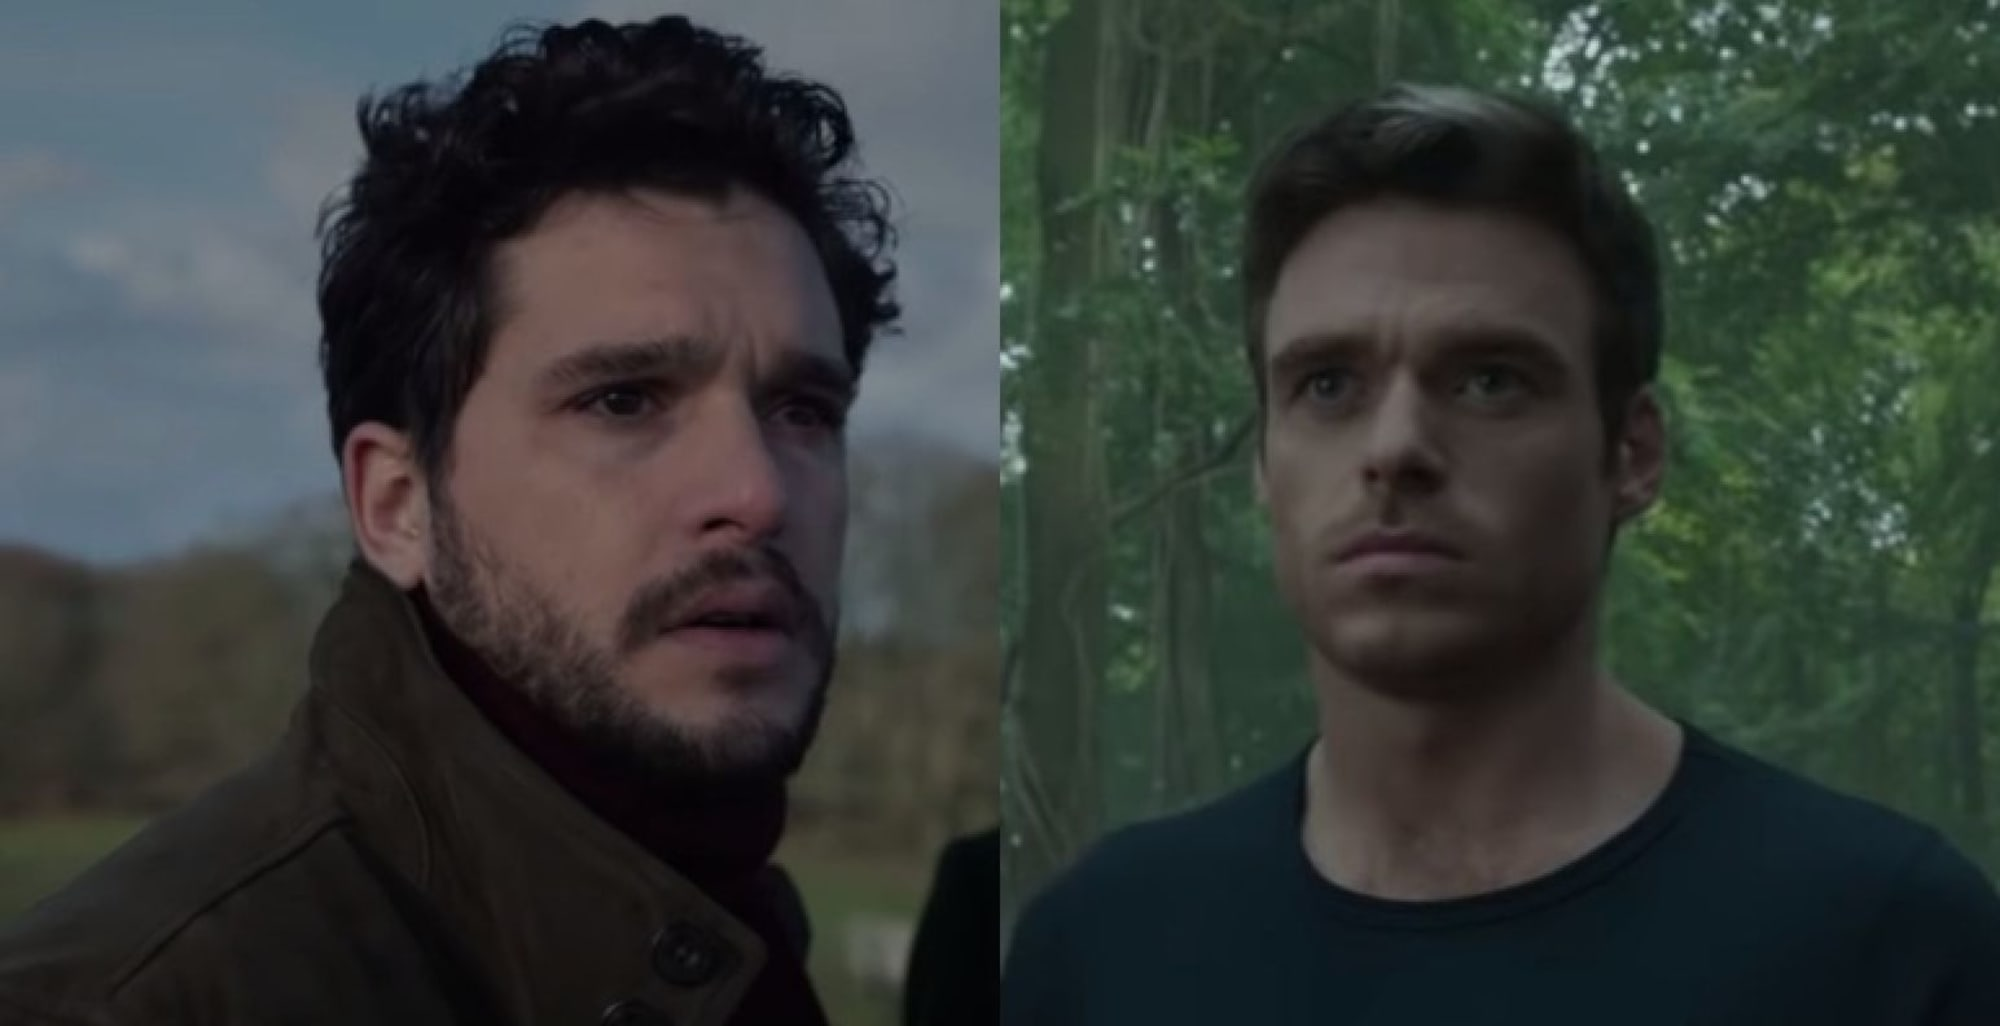 Richard Madden and Kit Harington don't interact much in Eternals